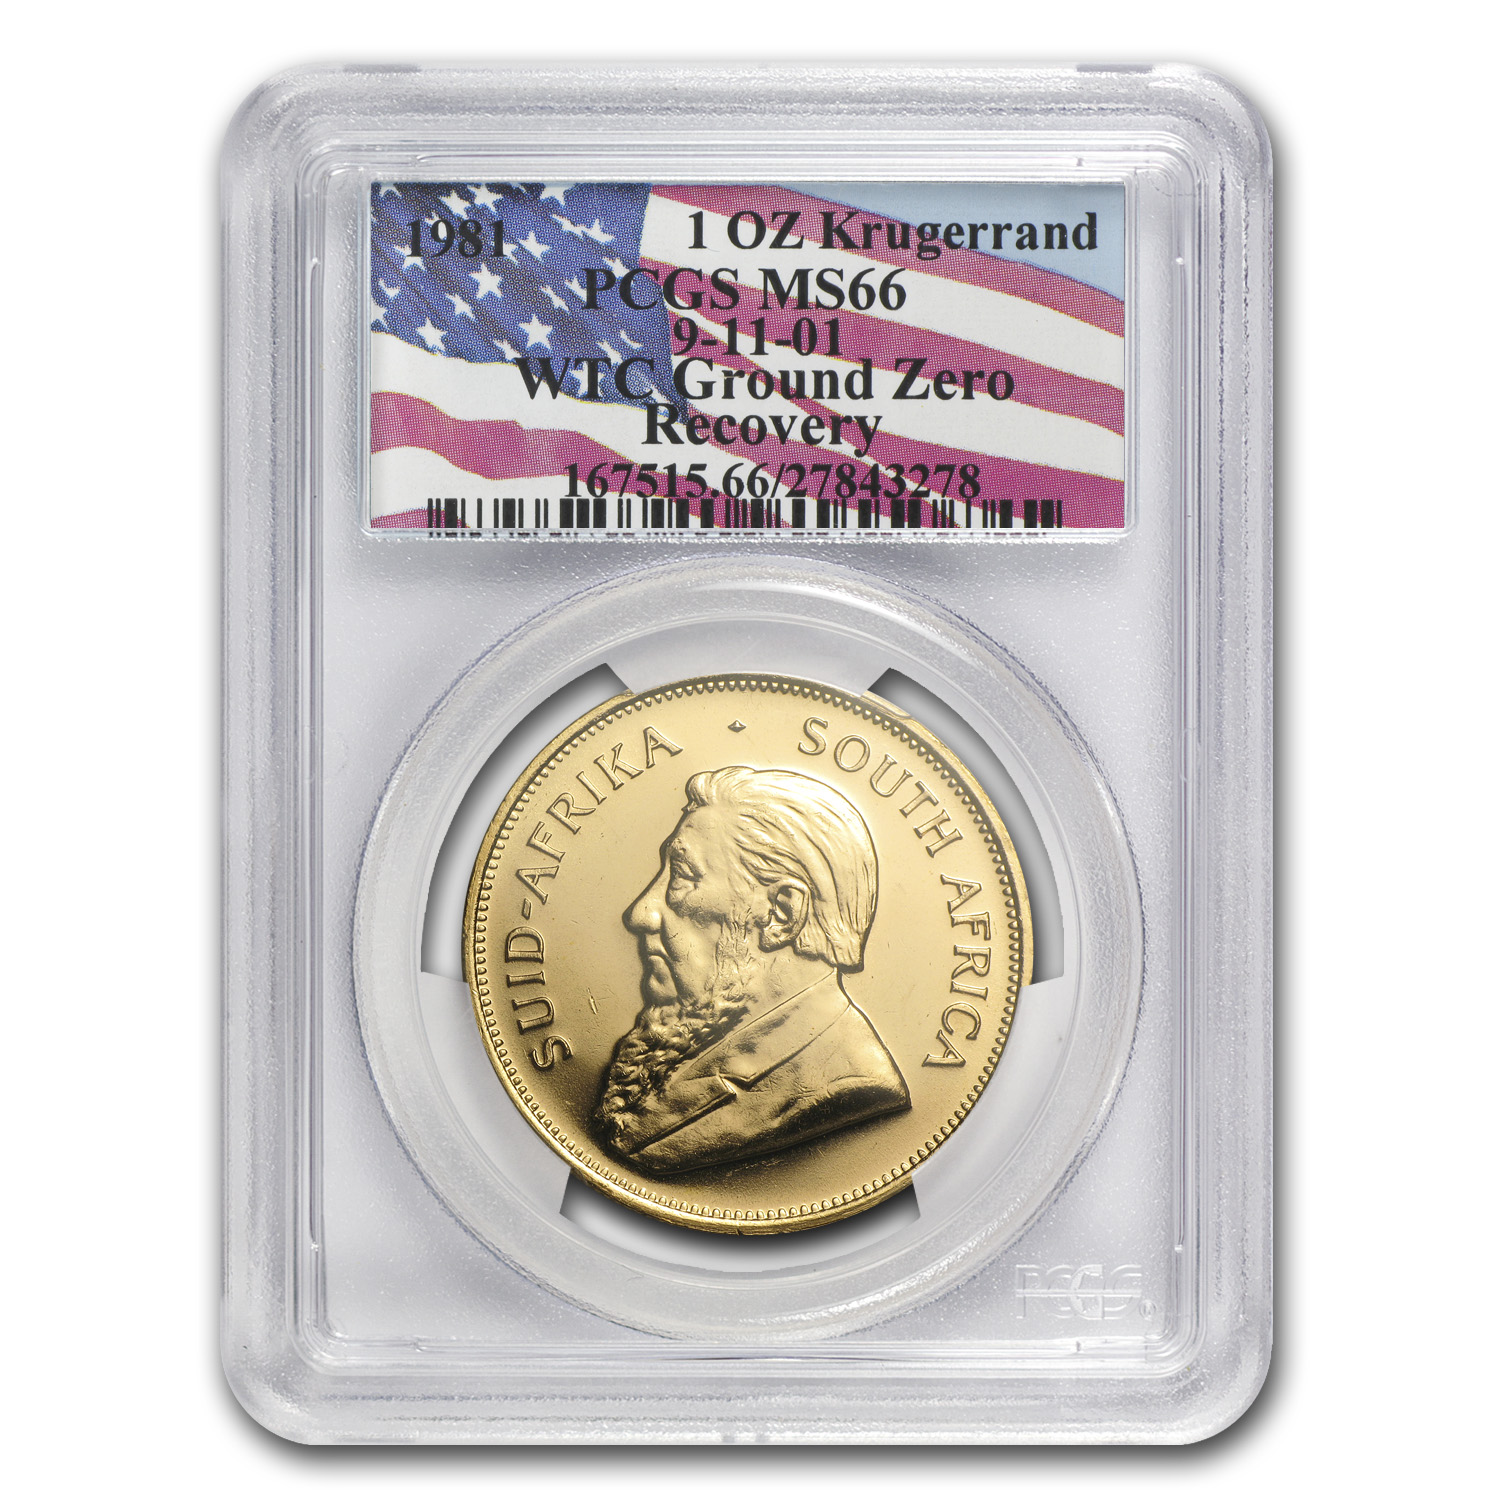 1981 1 oz Gold South African Krugerrand PCGS MS-66 (WTC)